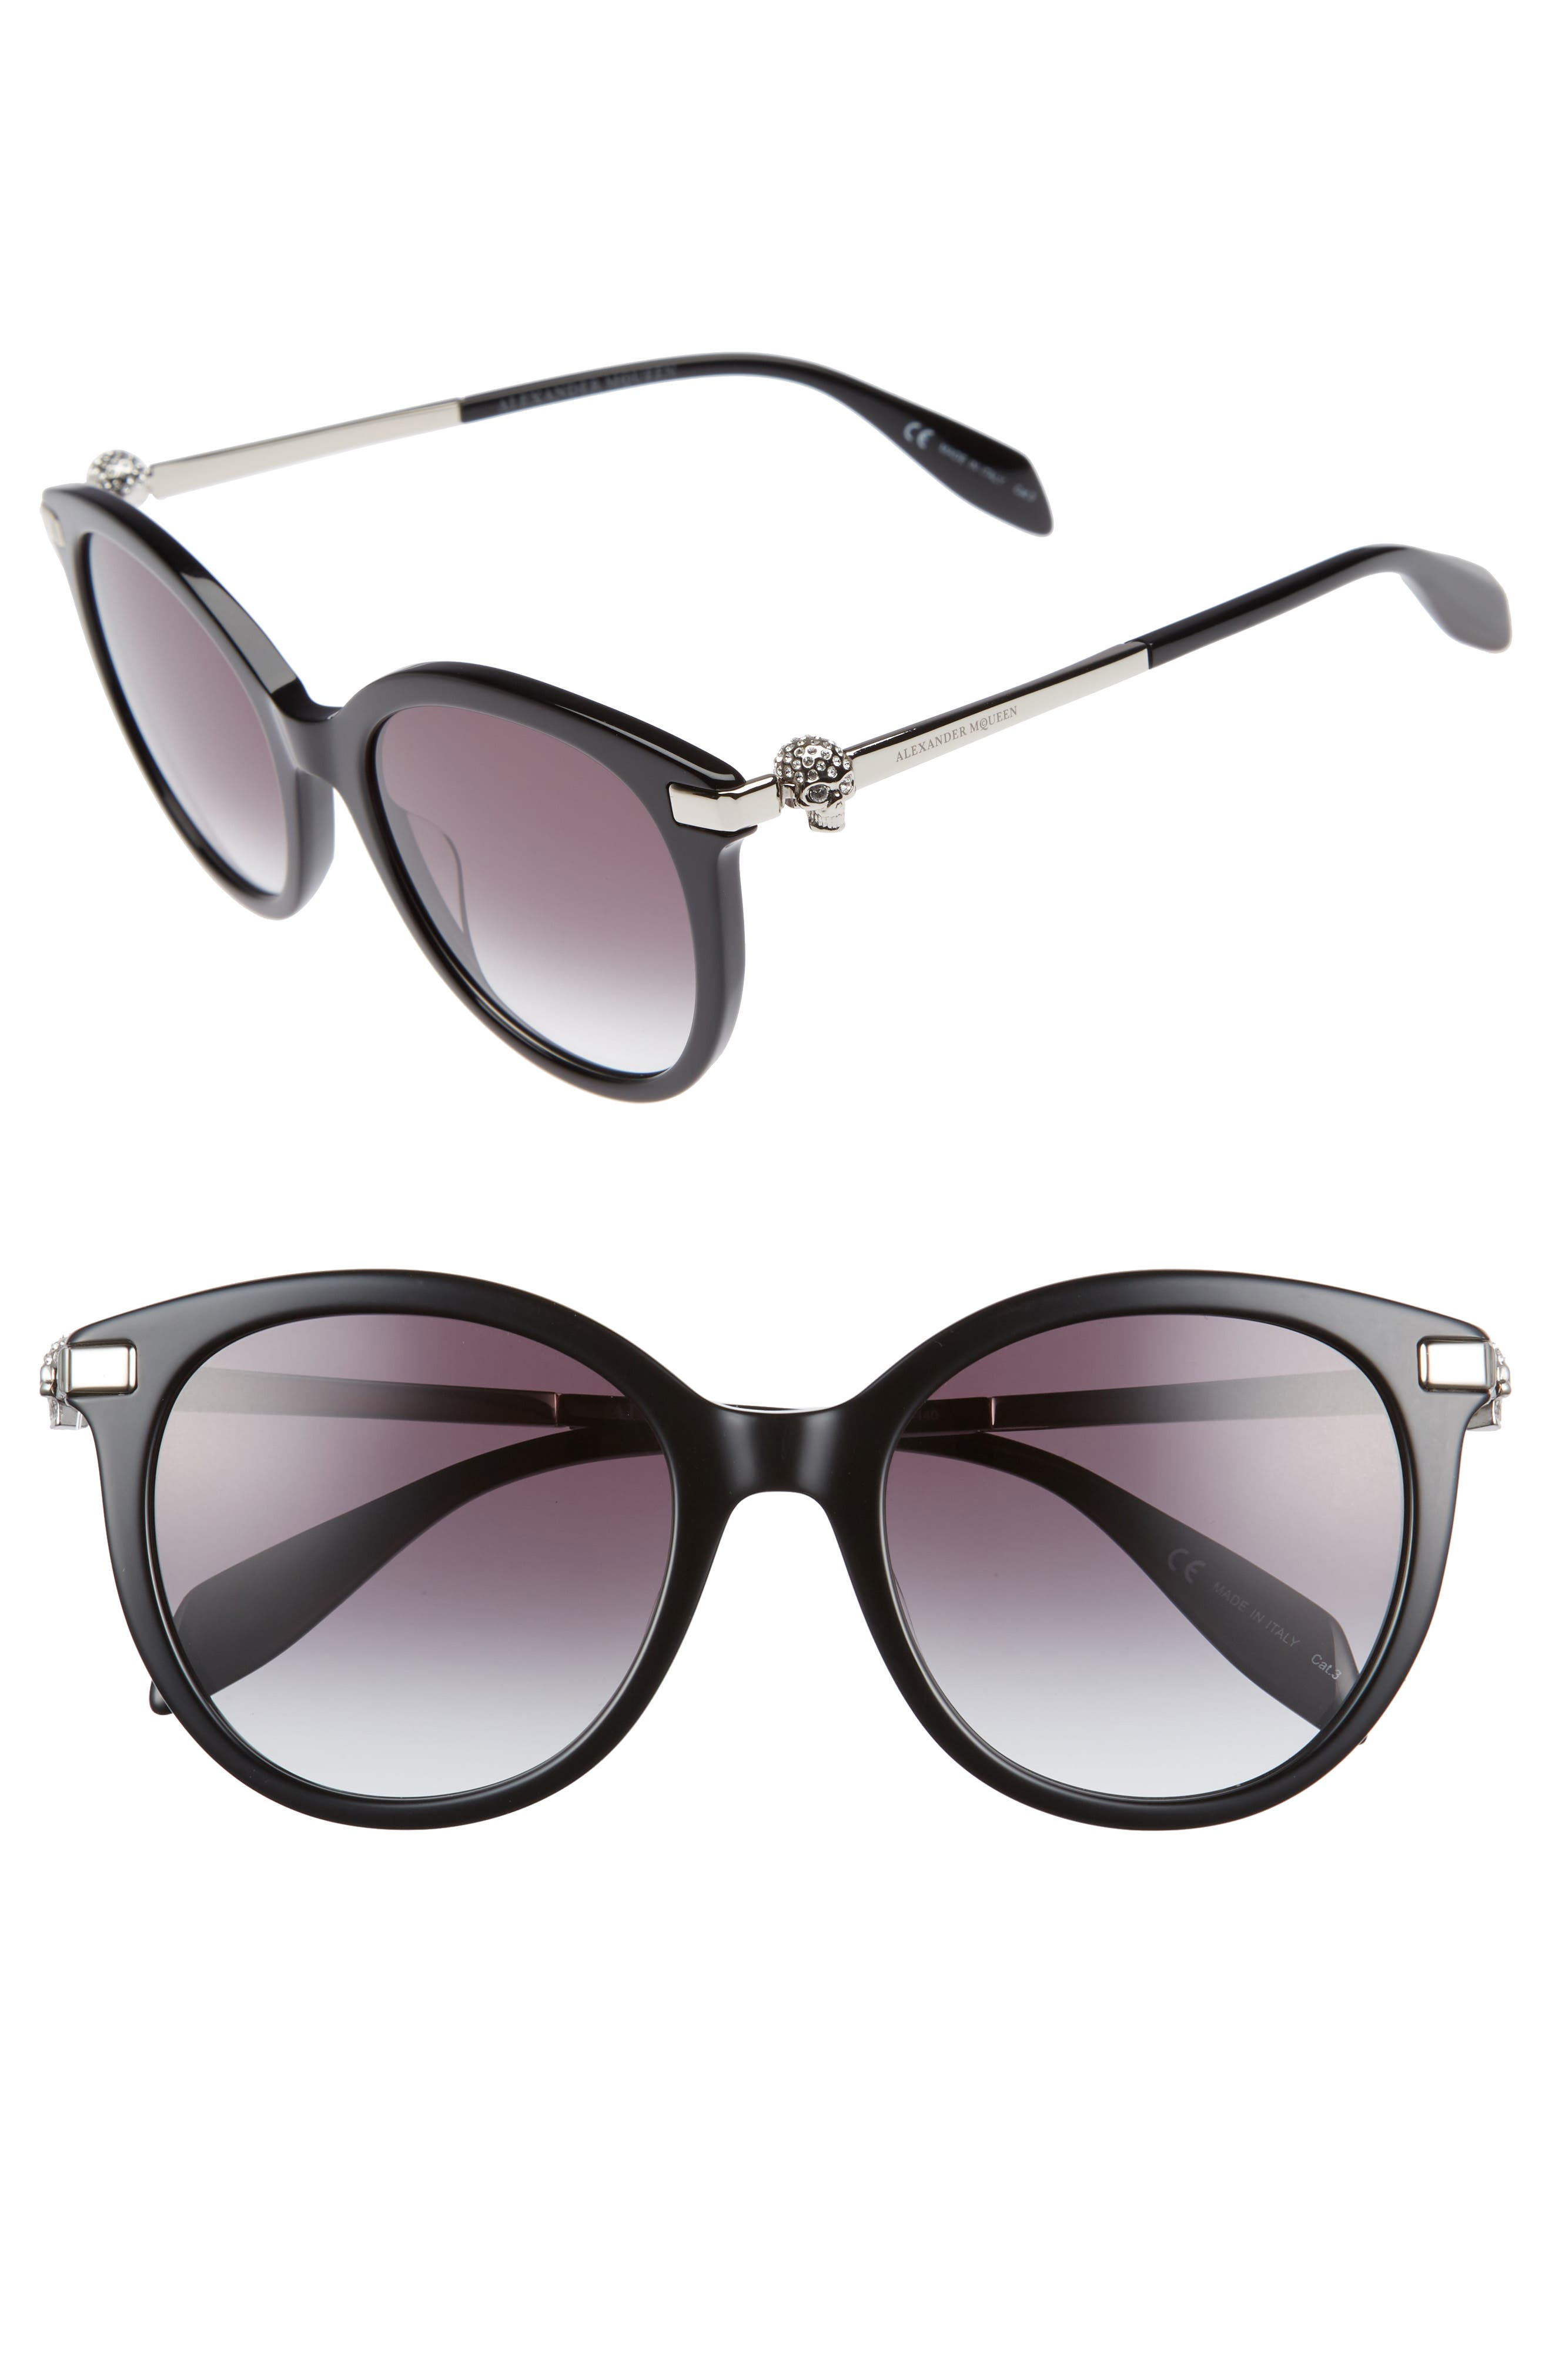 53mm Rounded Cat Eye Sunglasses,                             Main thumbnail 1, color,                             Black